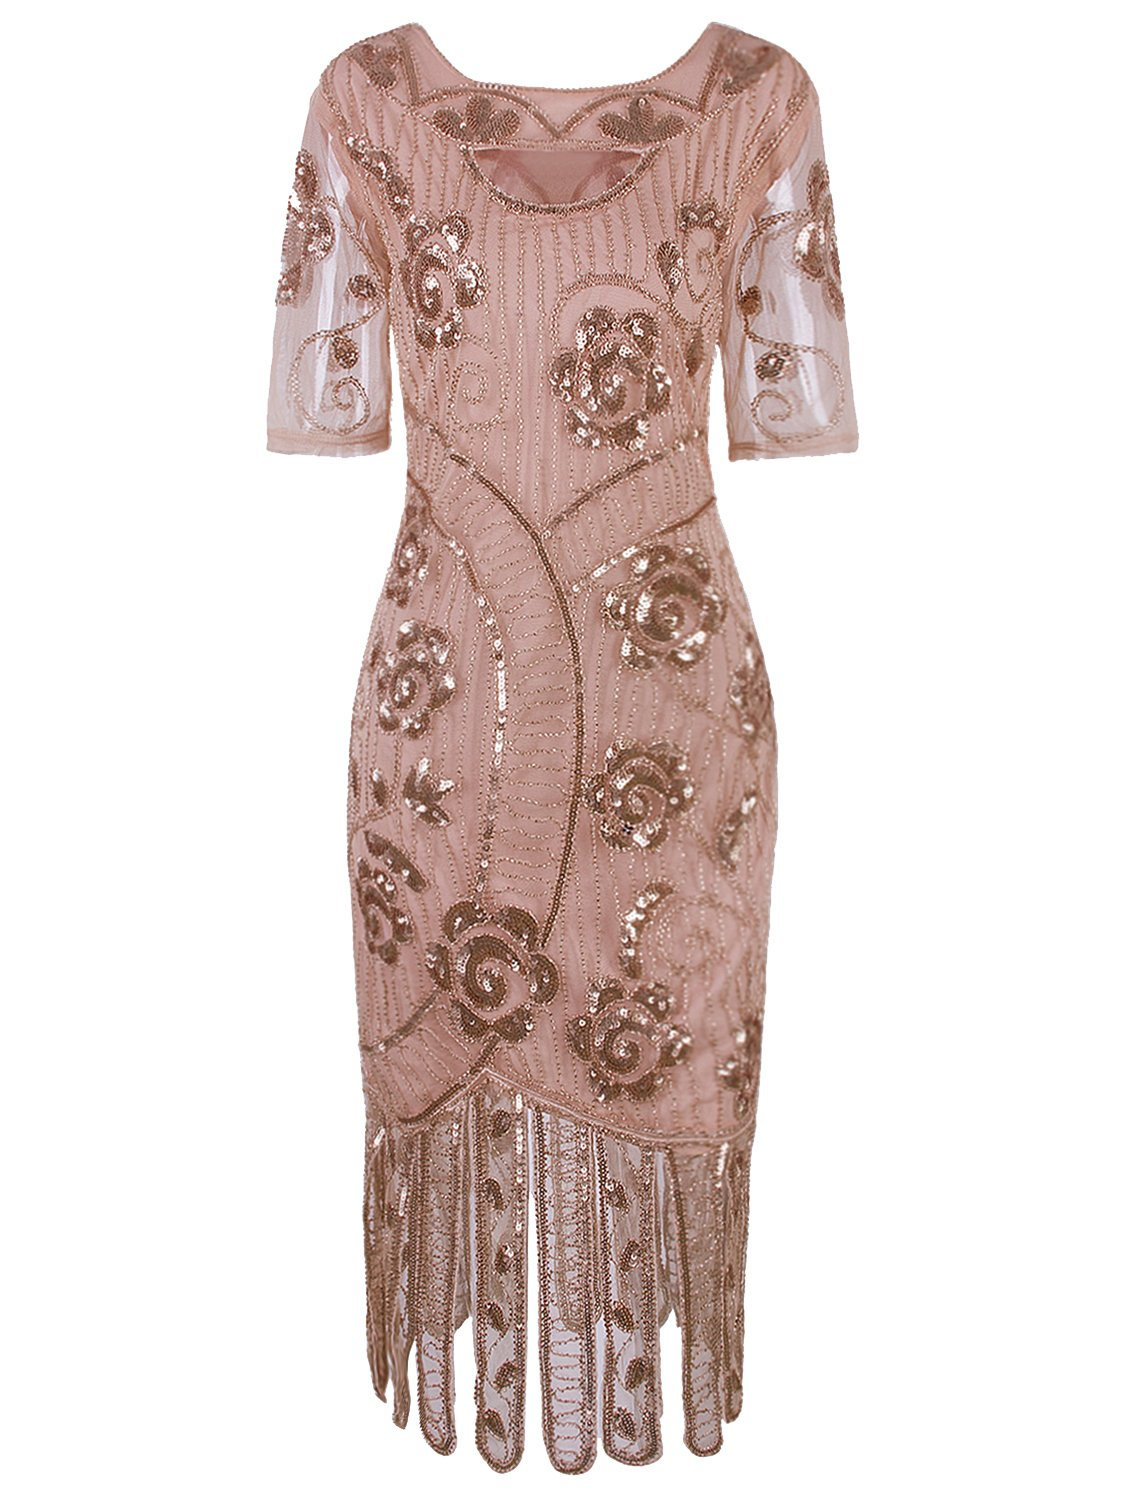 Vijiv Women's Vintage 1920s Style Sequined Beaded Roaring 20s Long Gatsby Flapper Dress with Sleeves for Themed Party, Beige X-Large